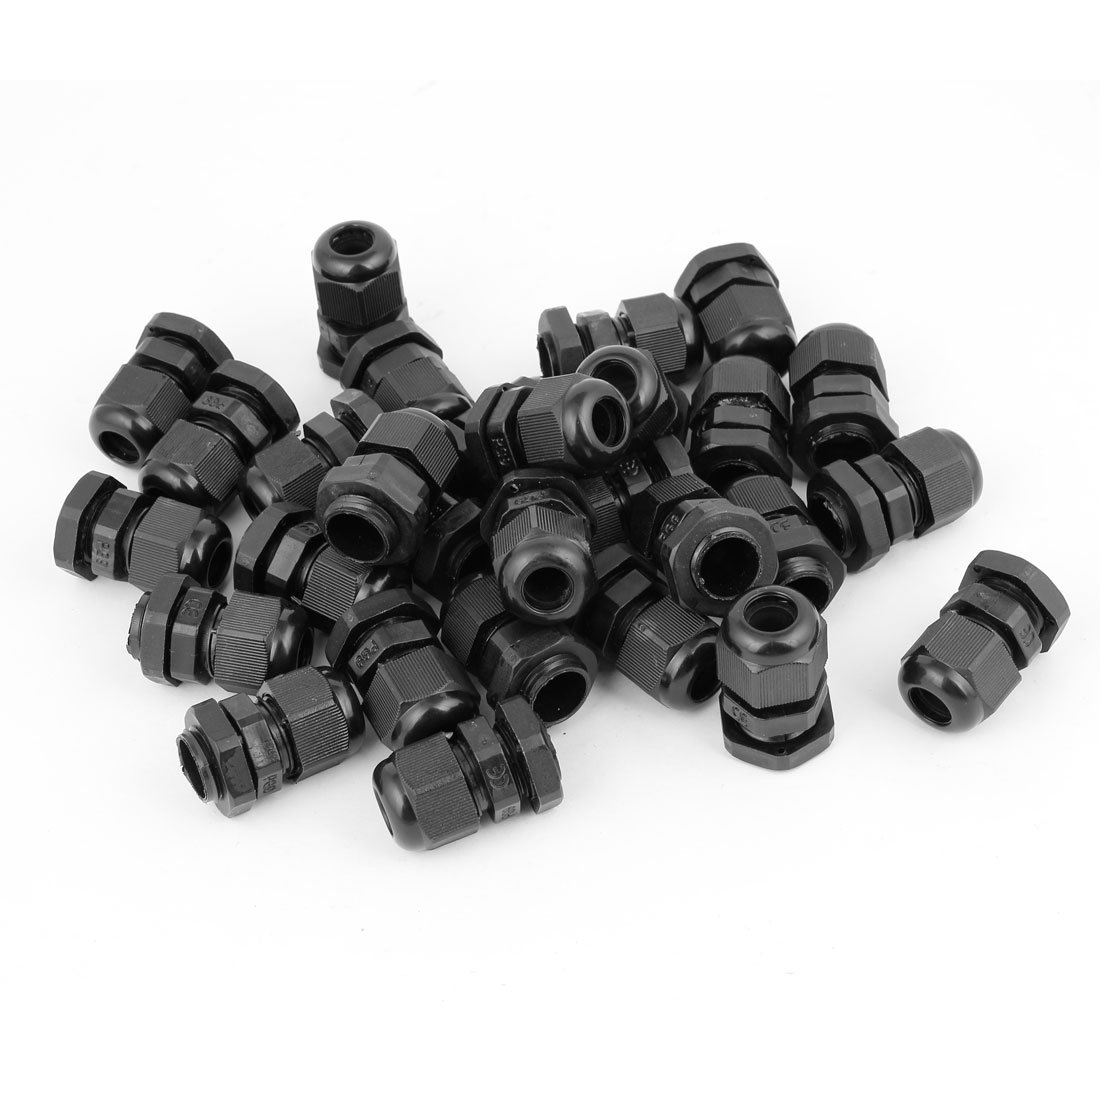 36 Pcs Black PG9 Plastic Connector Gland for 4mm-8mm Cable